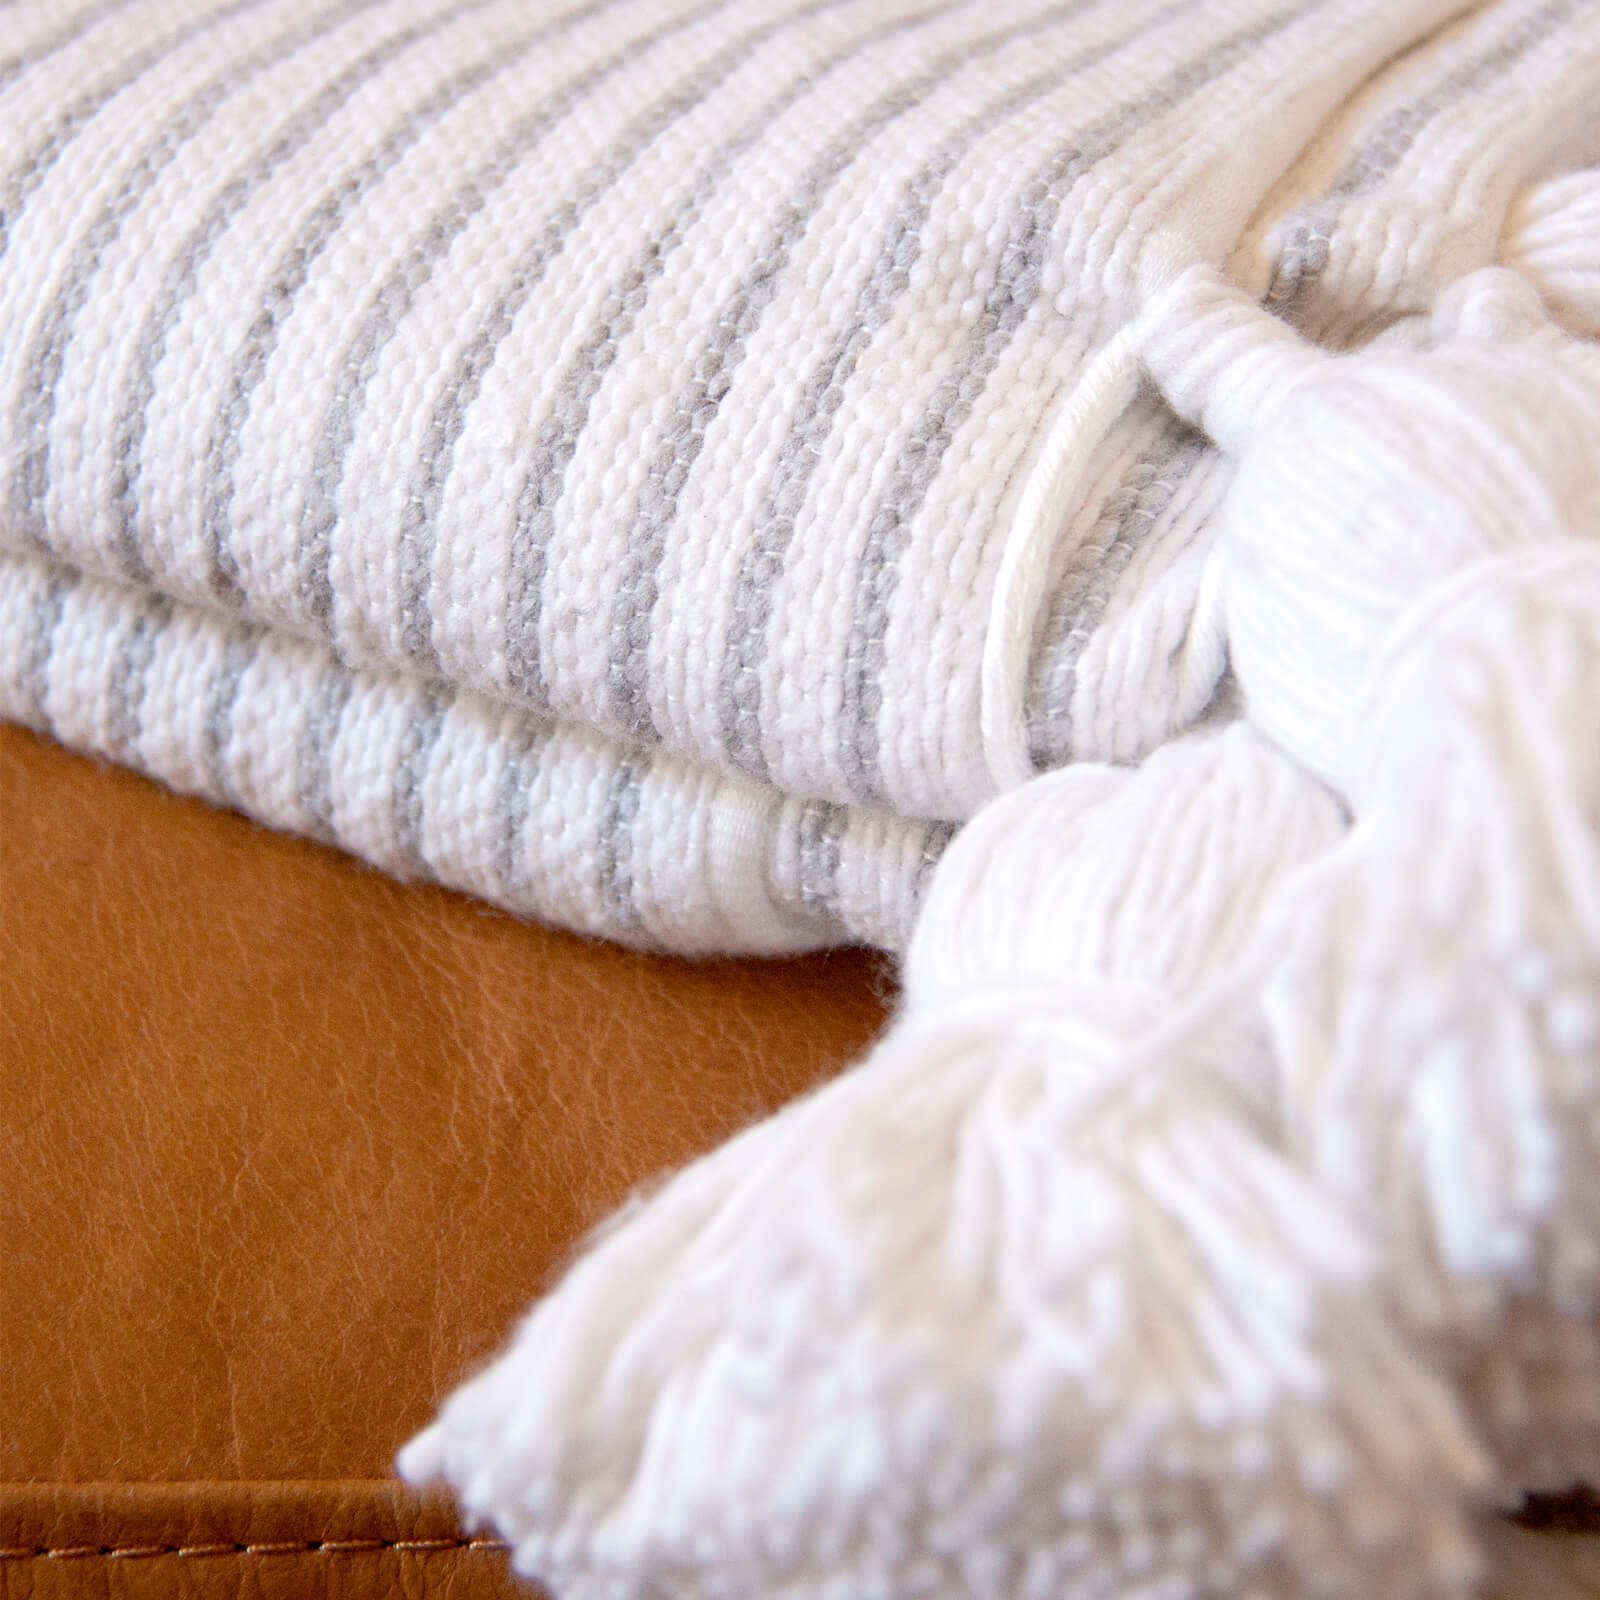 Authentic Hand Woven Moroccan Throw Blanket with Tassels, Cream and Grey Stripes